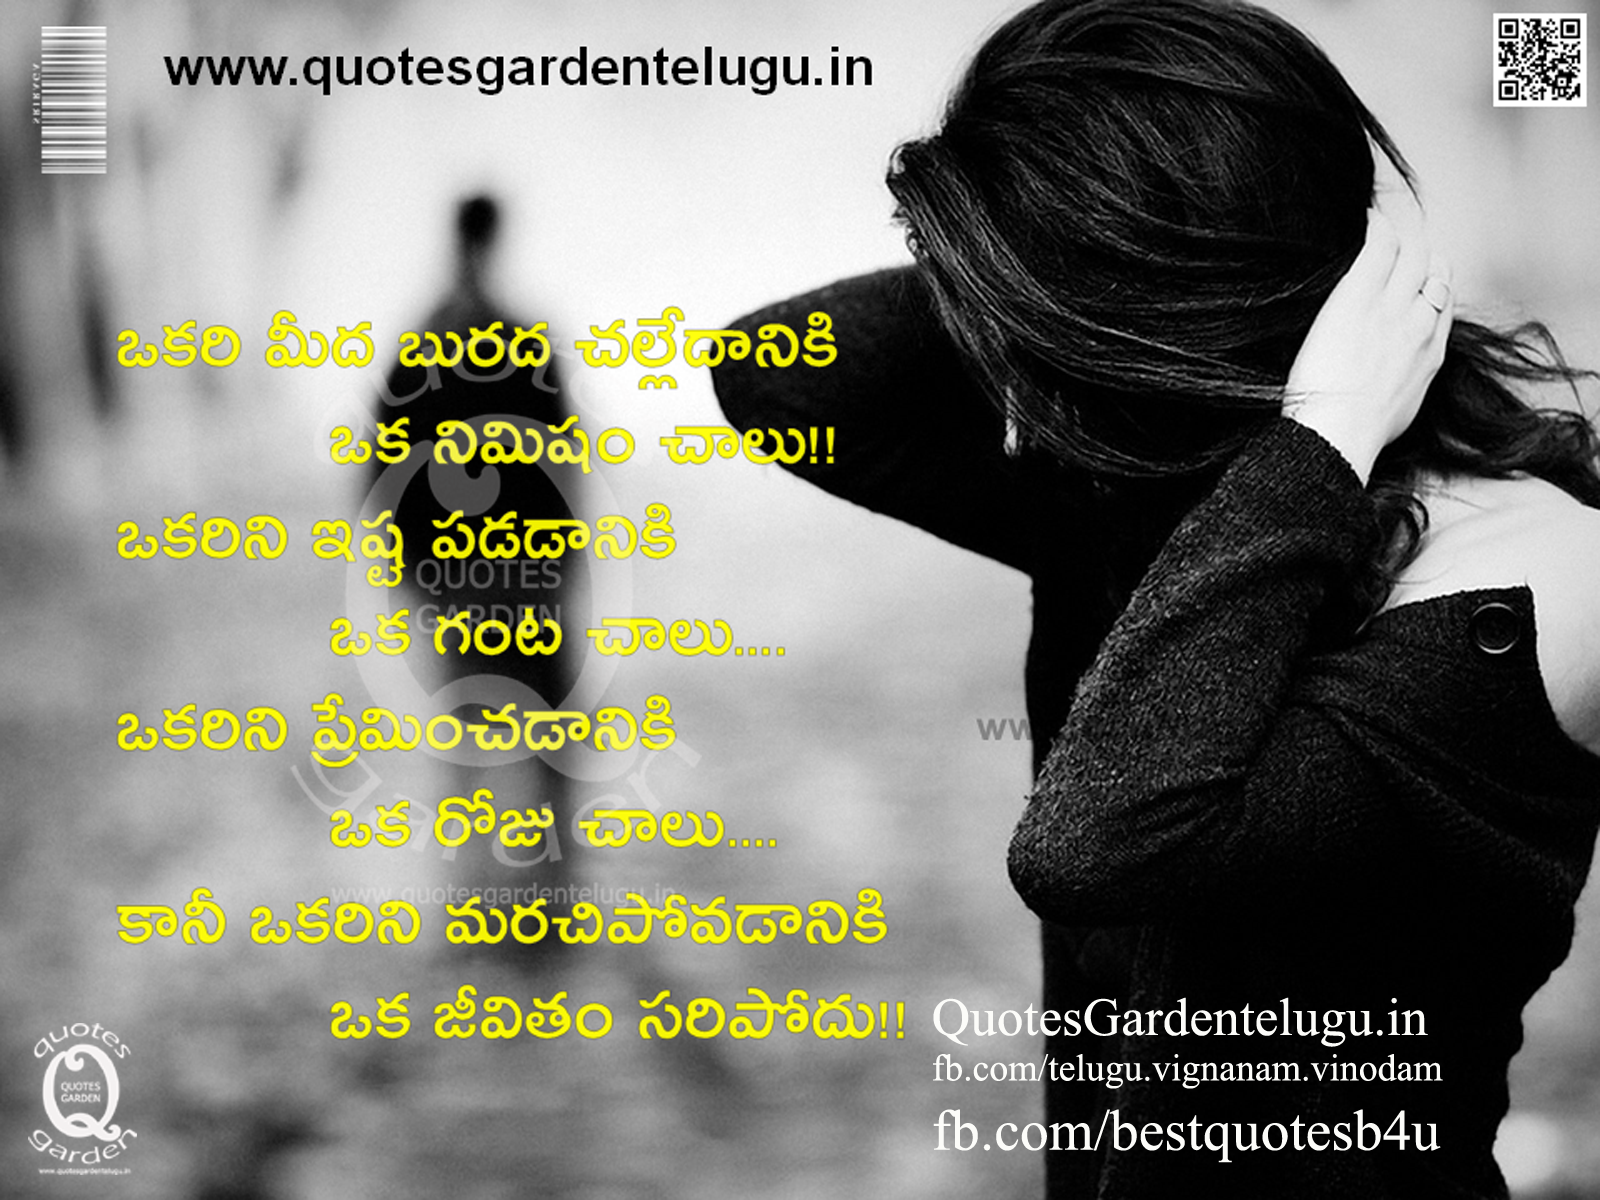 Deep Love Quotes For Her In Telugu : ... Telugu QuotesBest Telugu Love Quotes QUOTES GARDEN Telugu Quotes